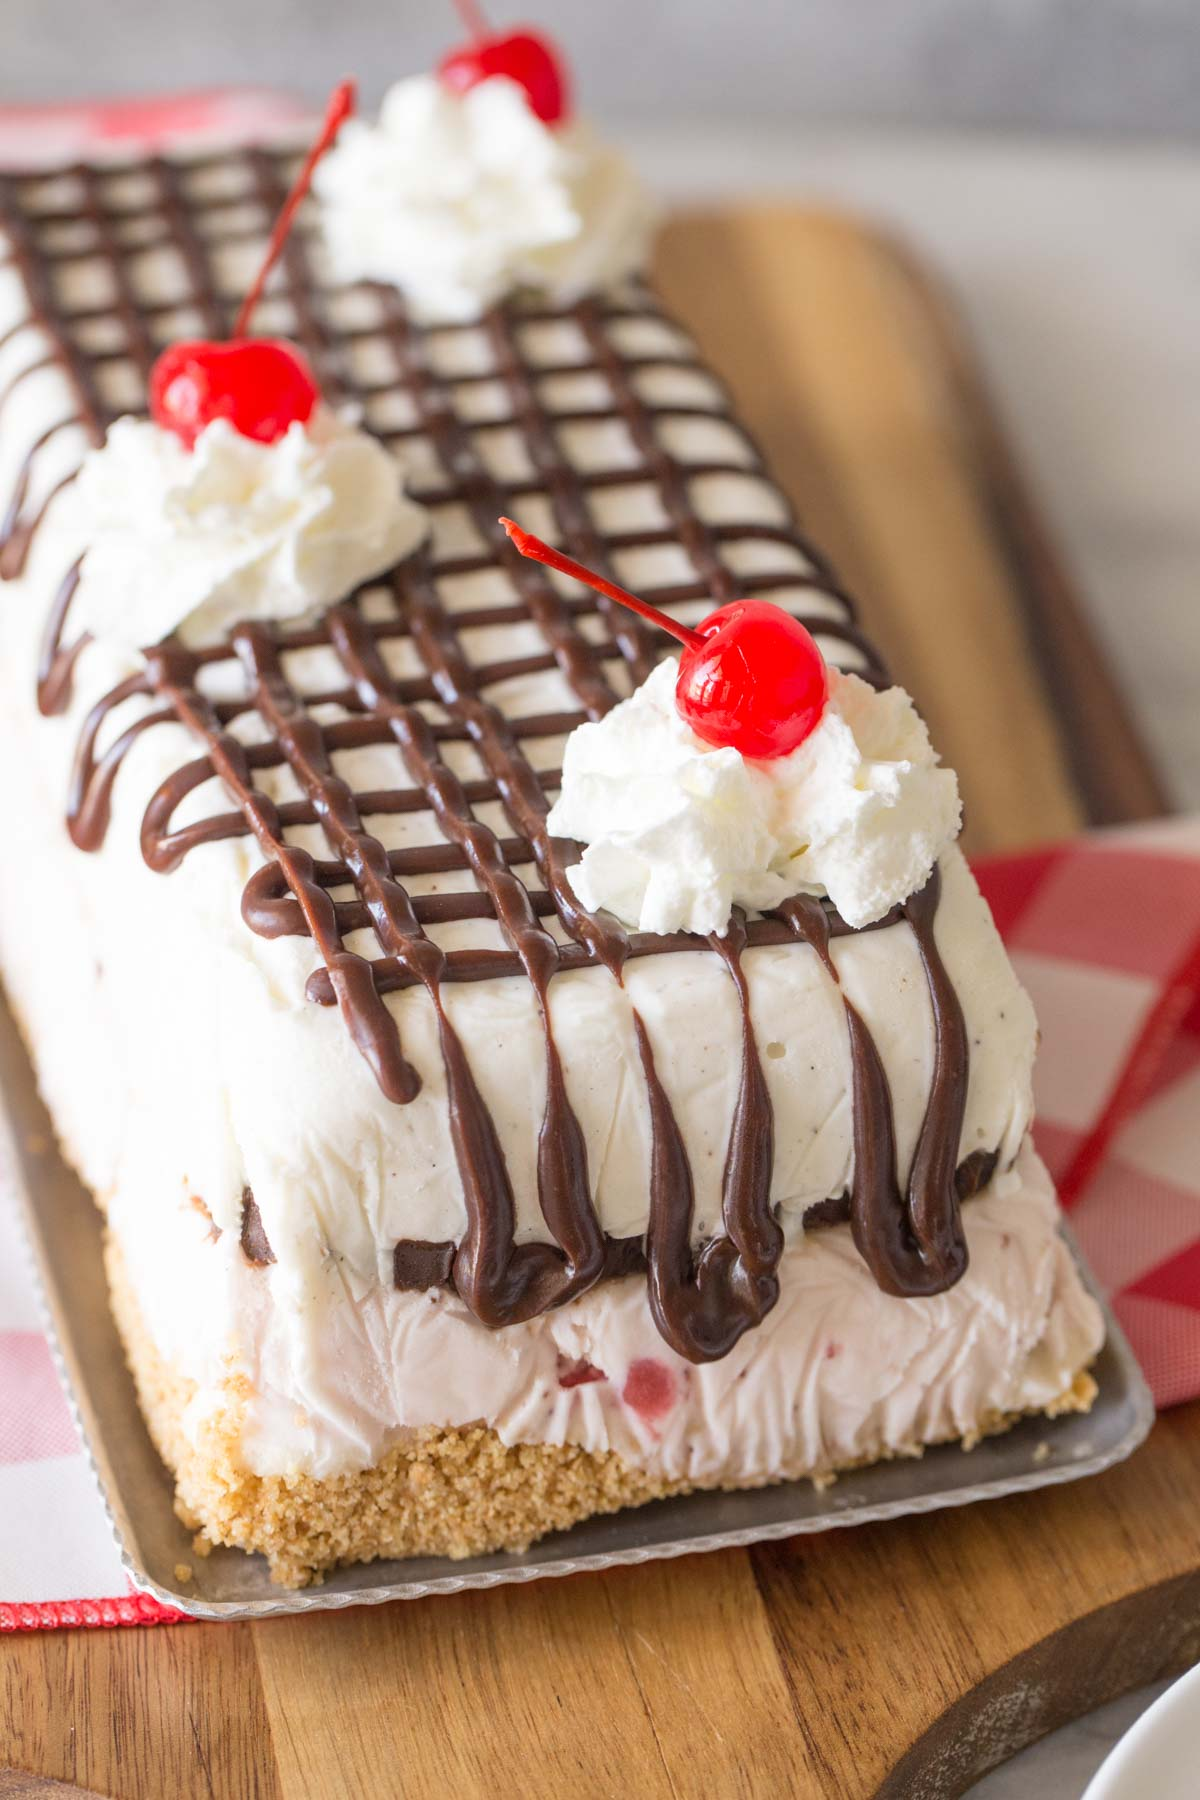 Banana Split Ice Cream Cake on a serving tray sitting on a wooden cutting board.